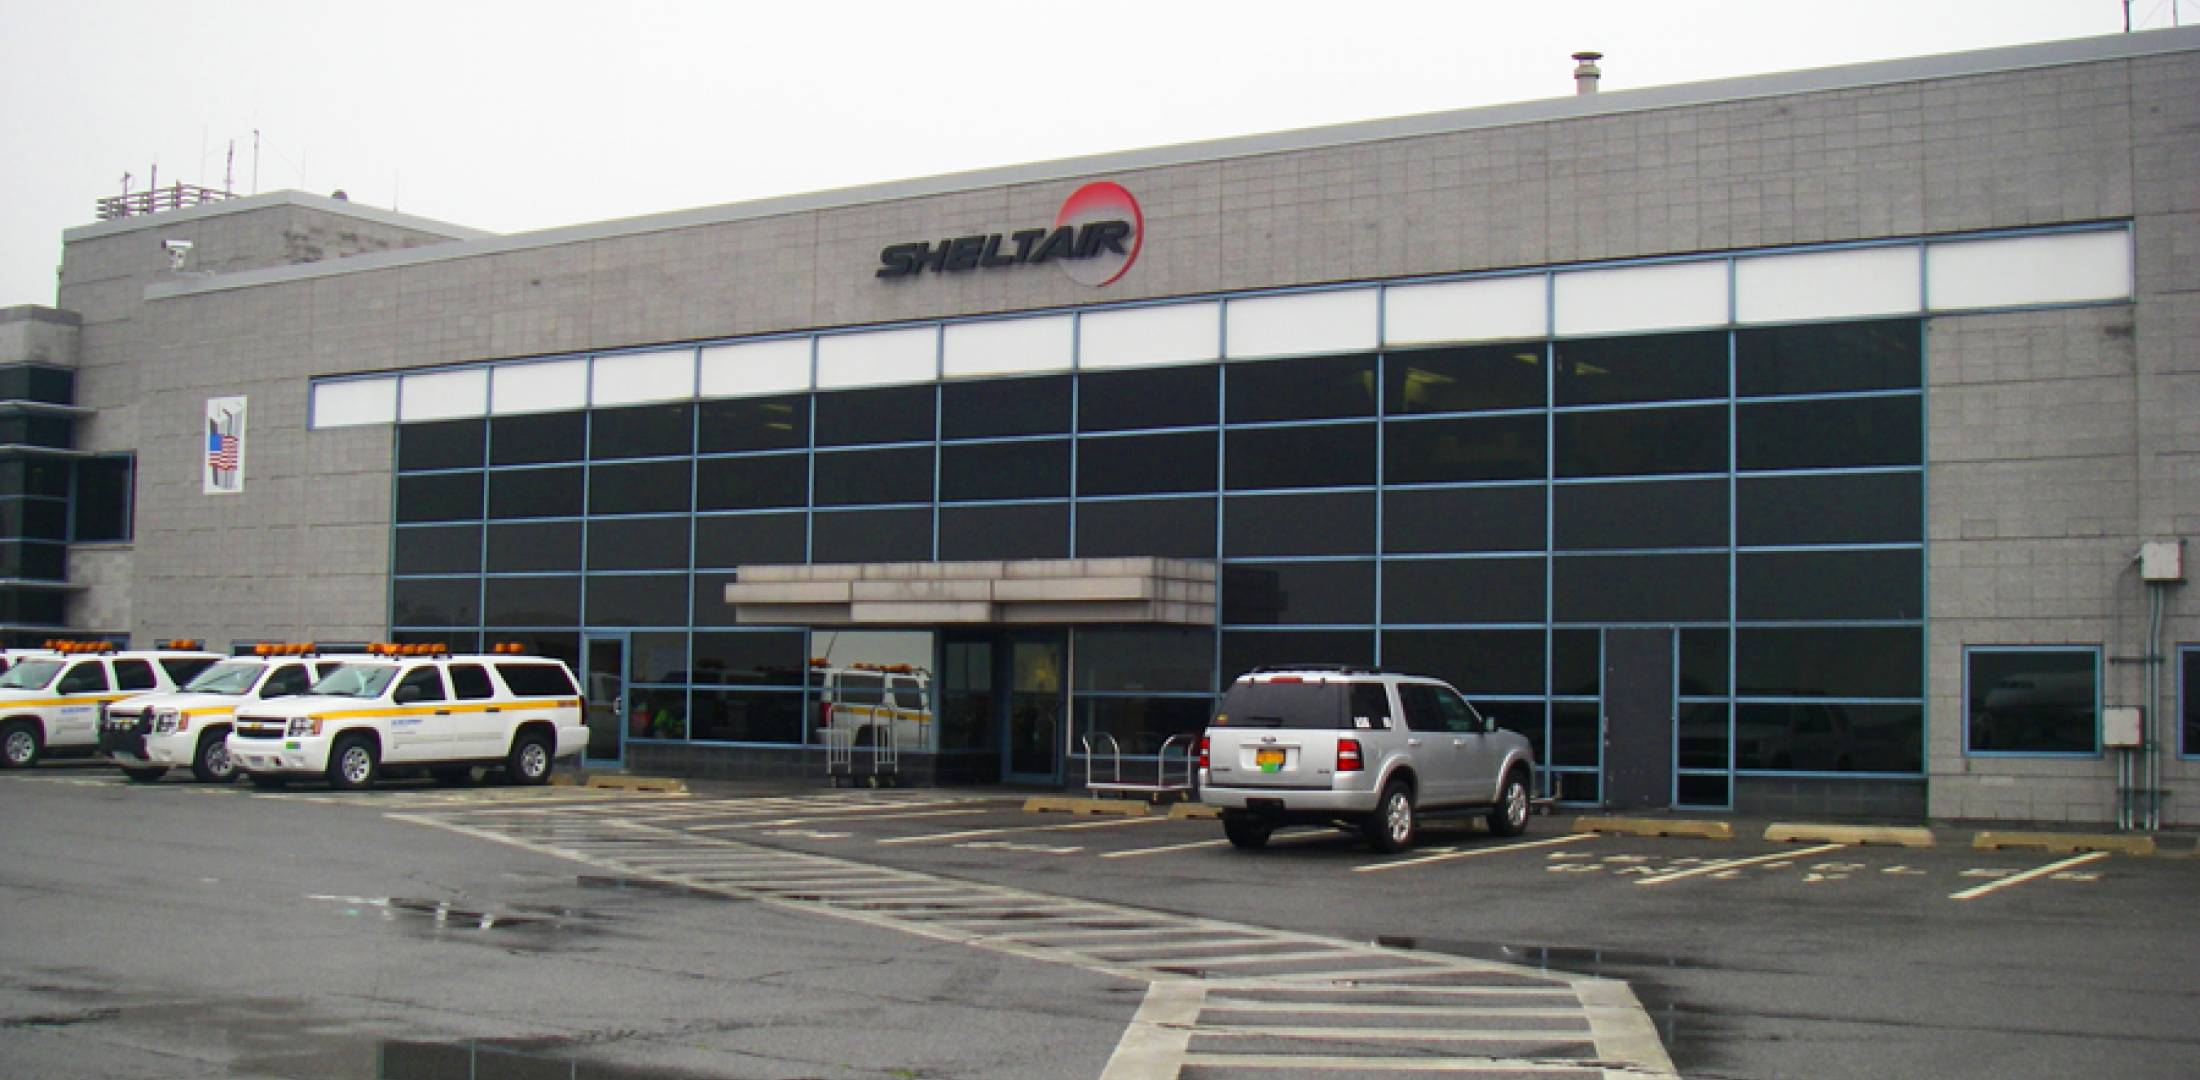 Sheltair Opens First Privately Operated FBO at JFK